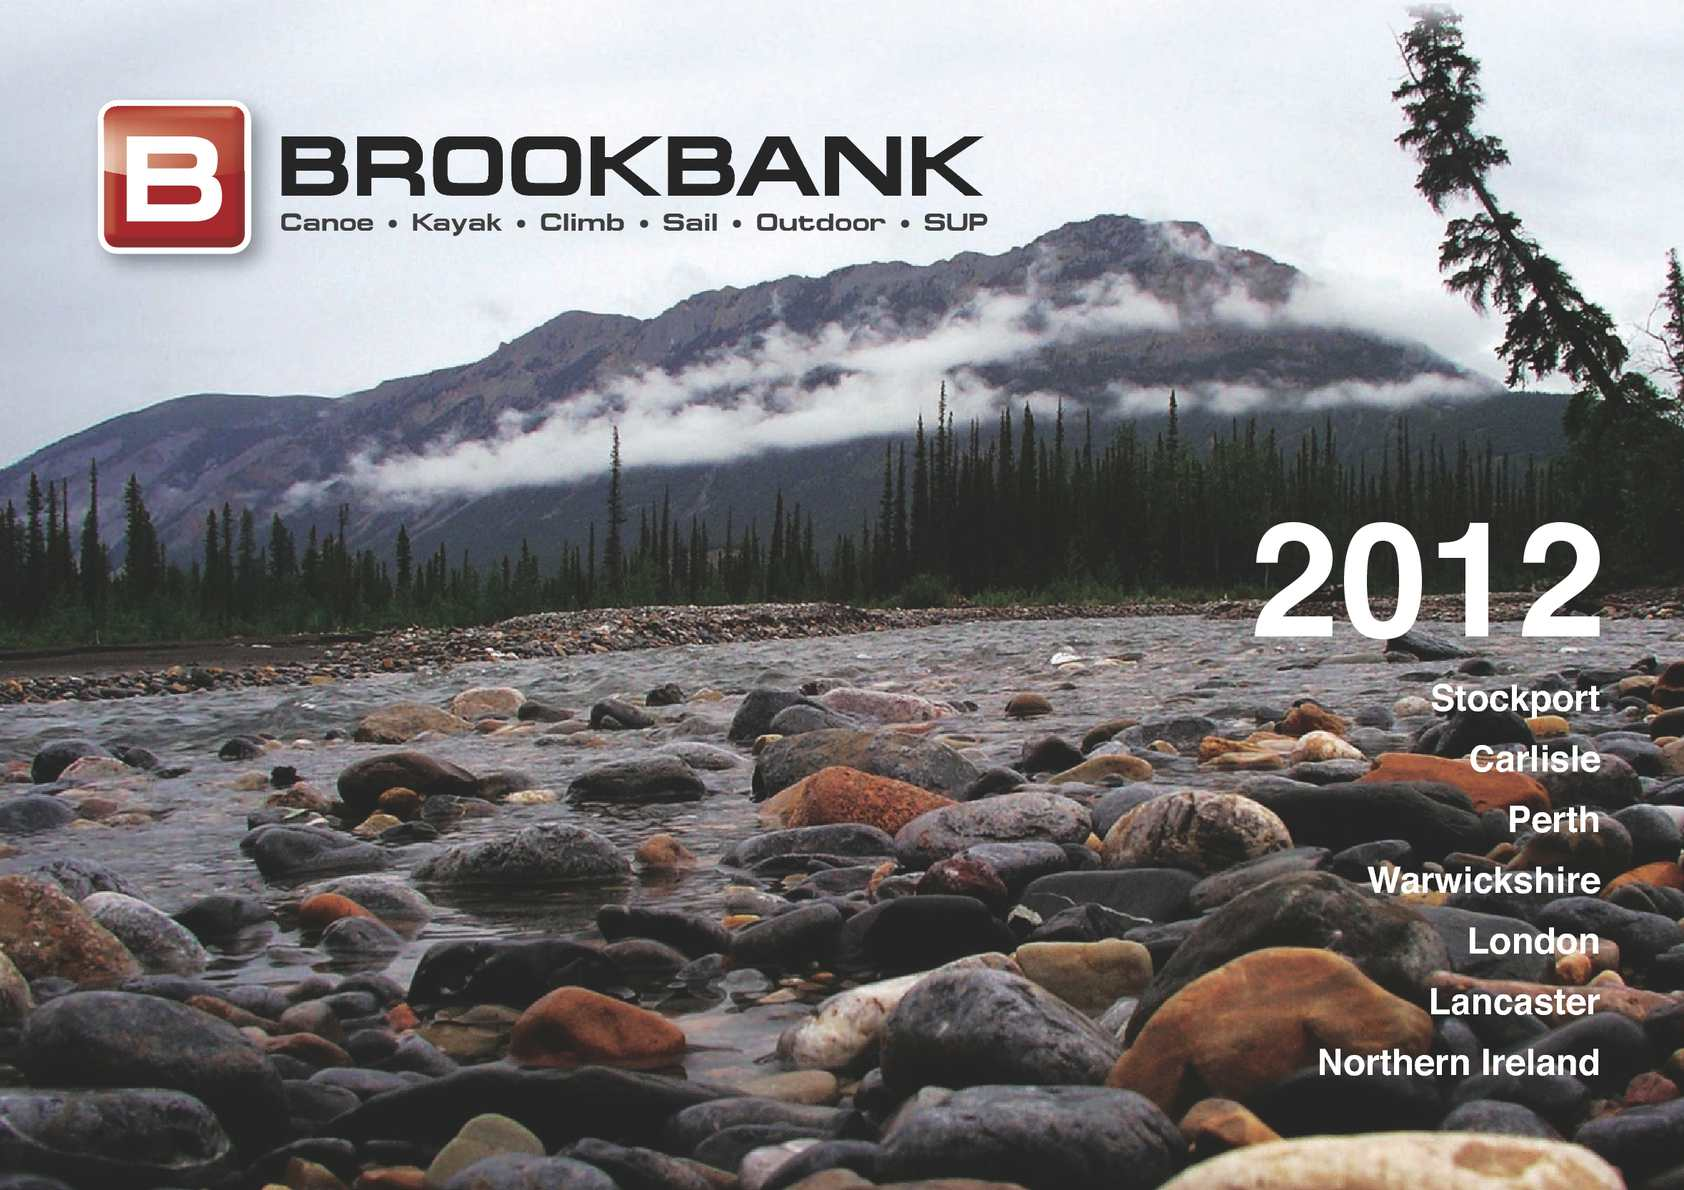 c3dfb1c22e Calaméo - Brookbank Catalogue 2012